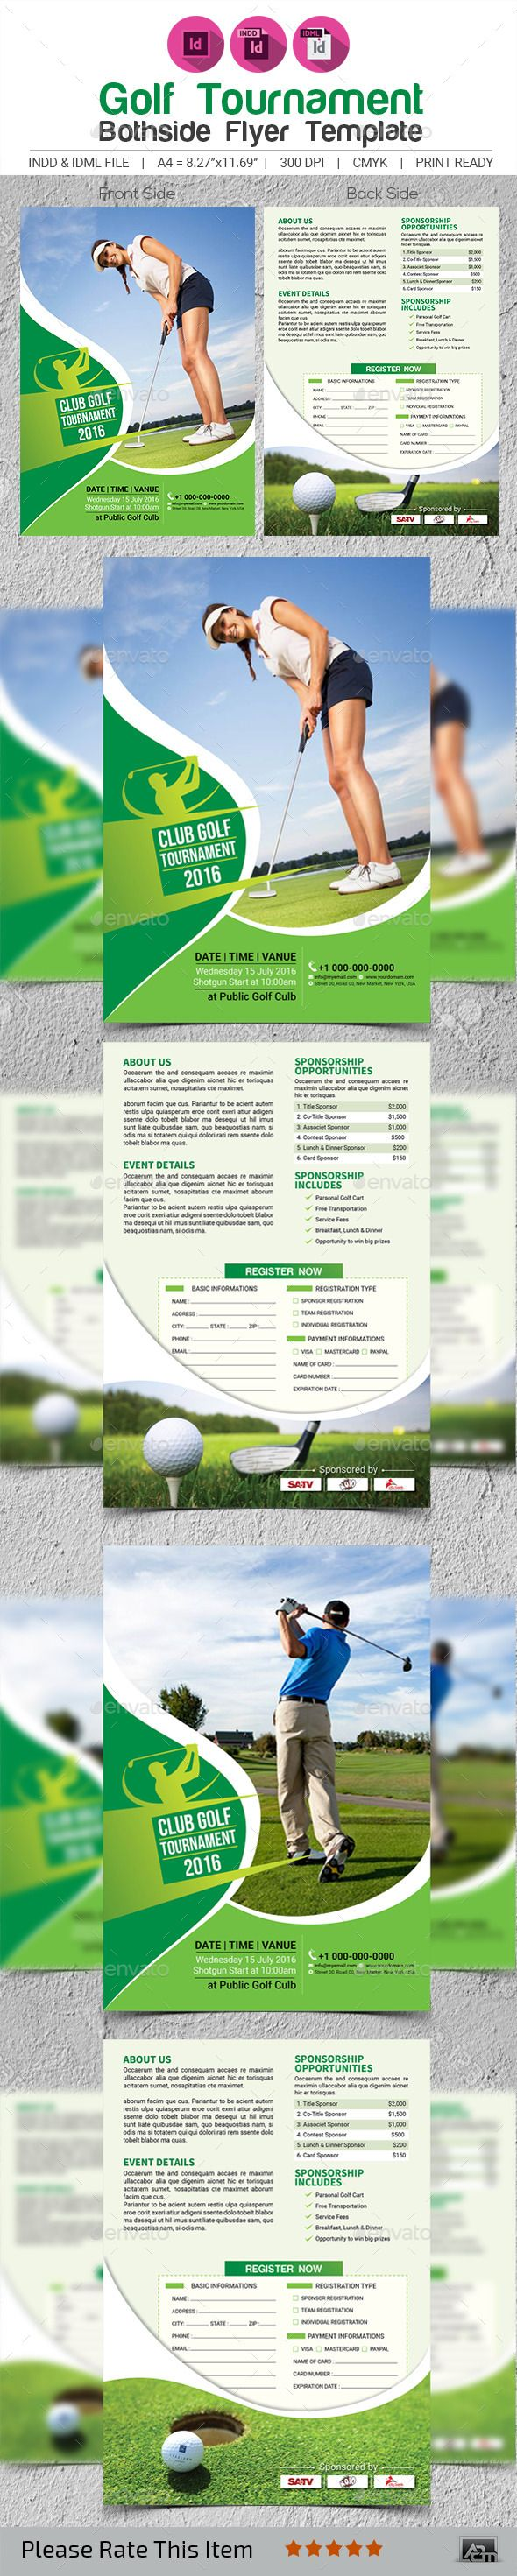 beer pong tour nt flyer flyers beer pong and flyer template golf tour nt flyer template